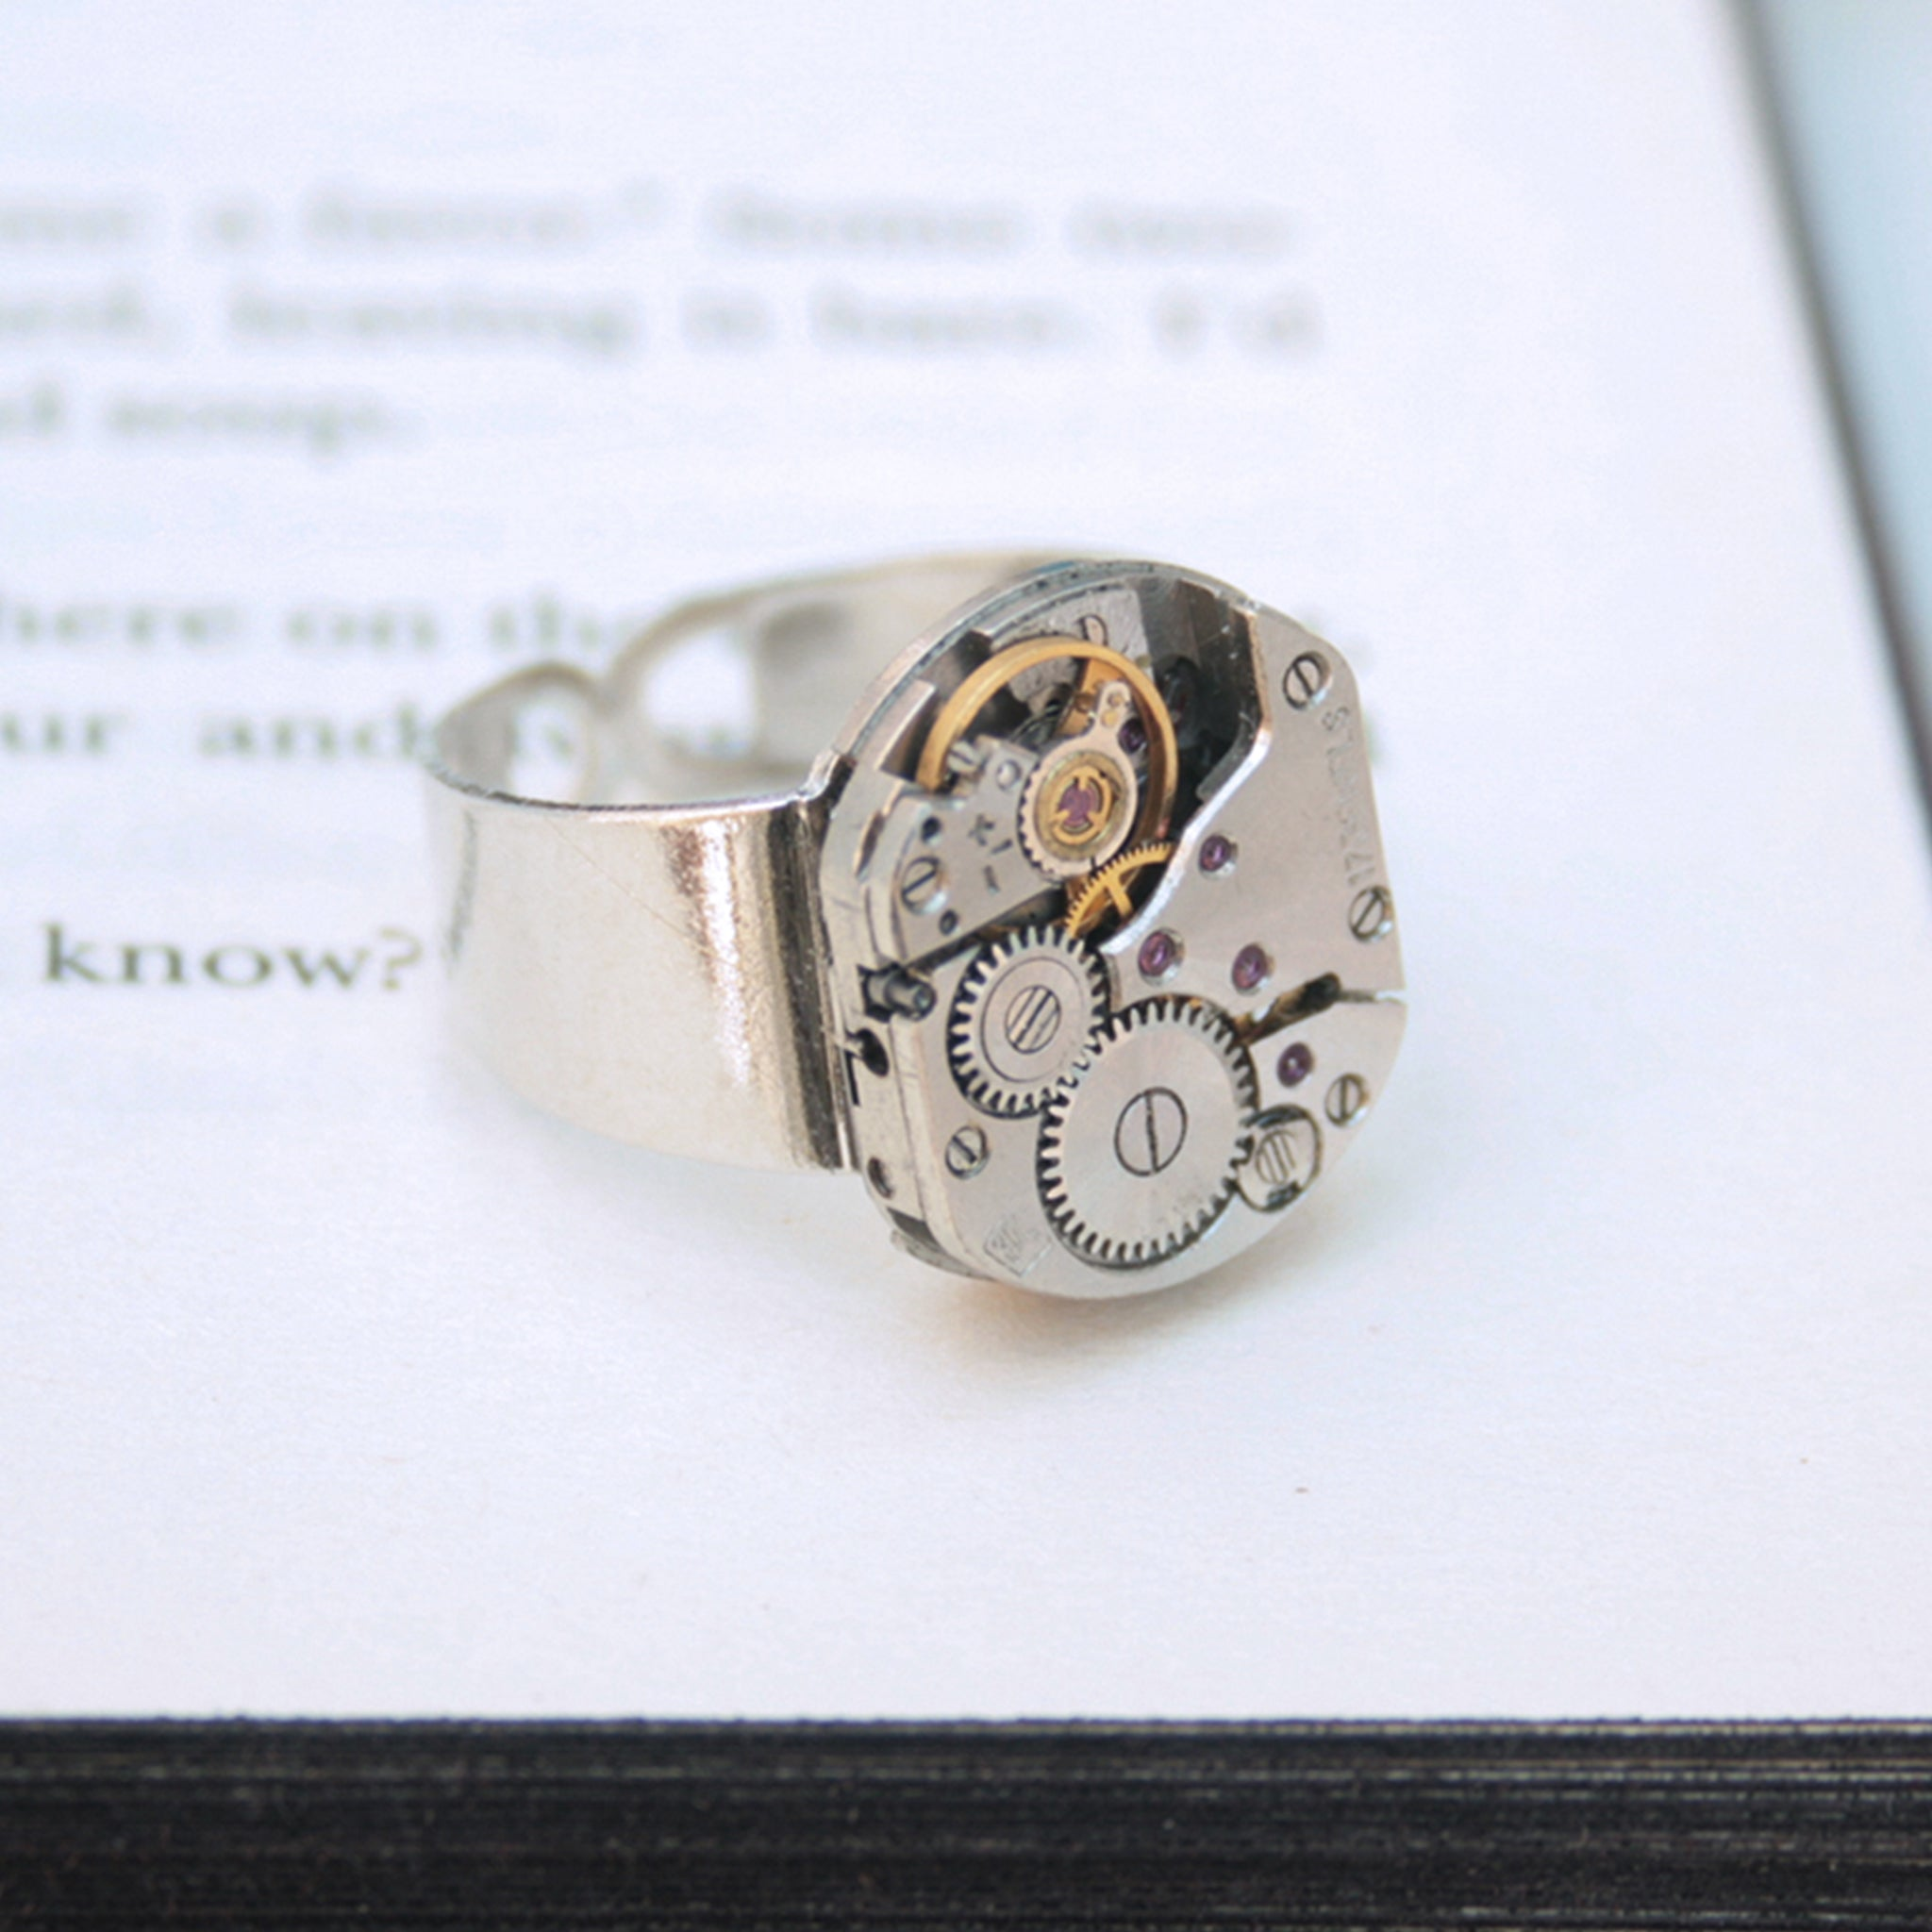 Mens Pinky Ring in Steampunk Style made of watch movement in silver color